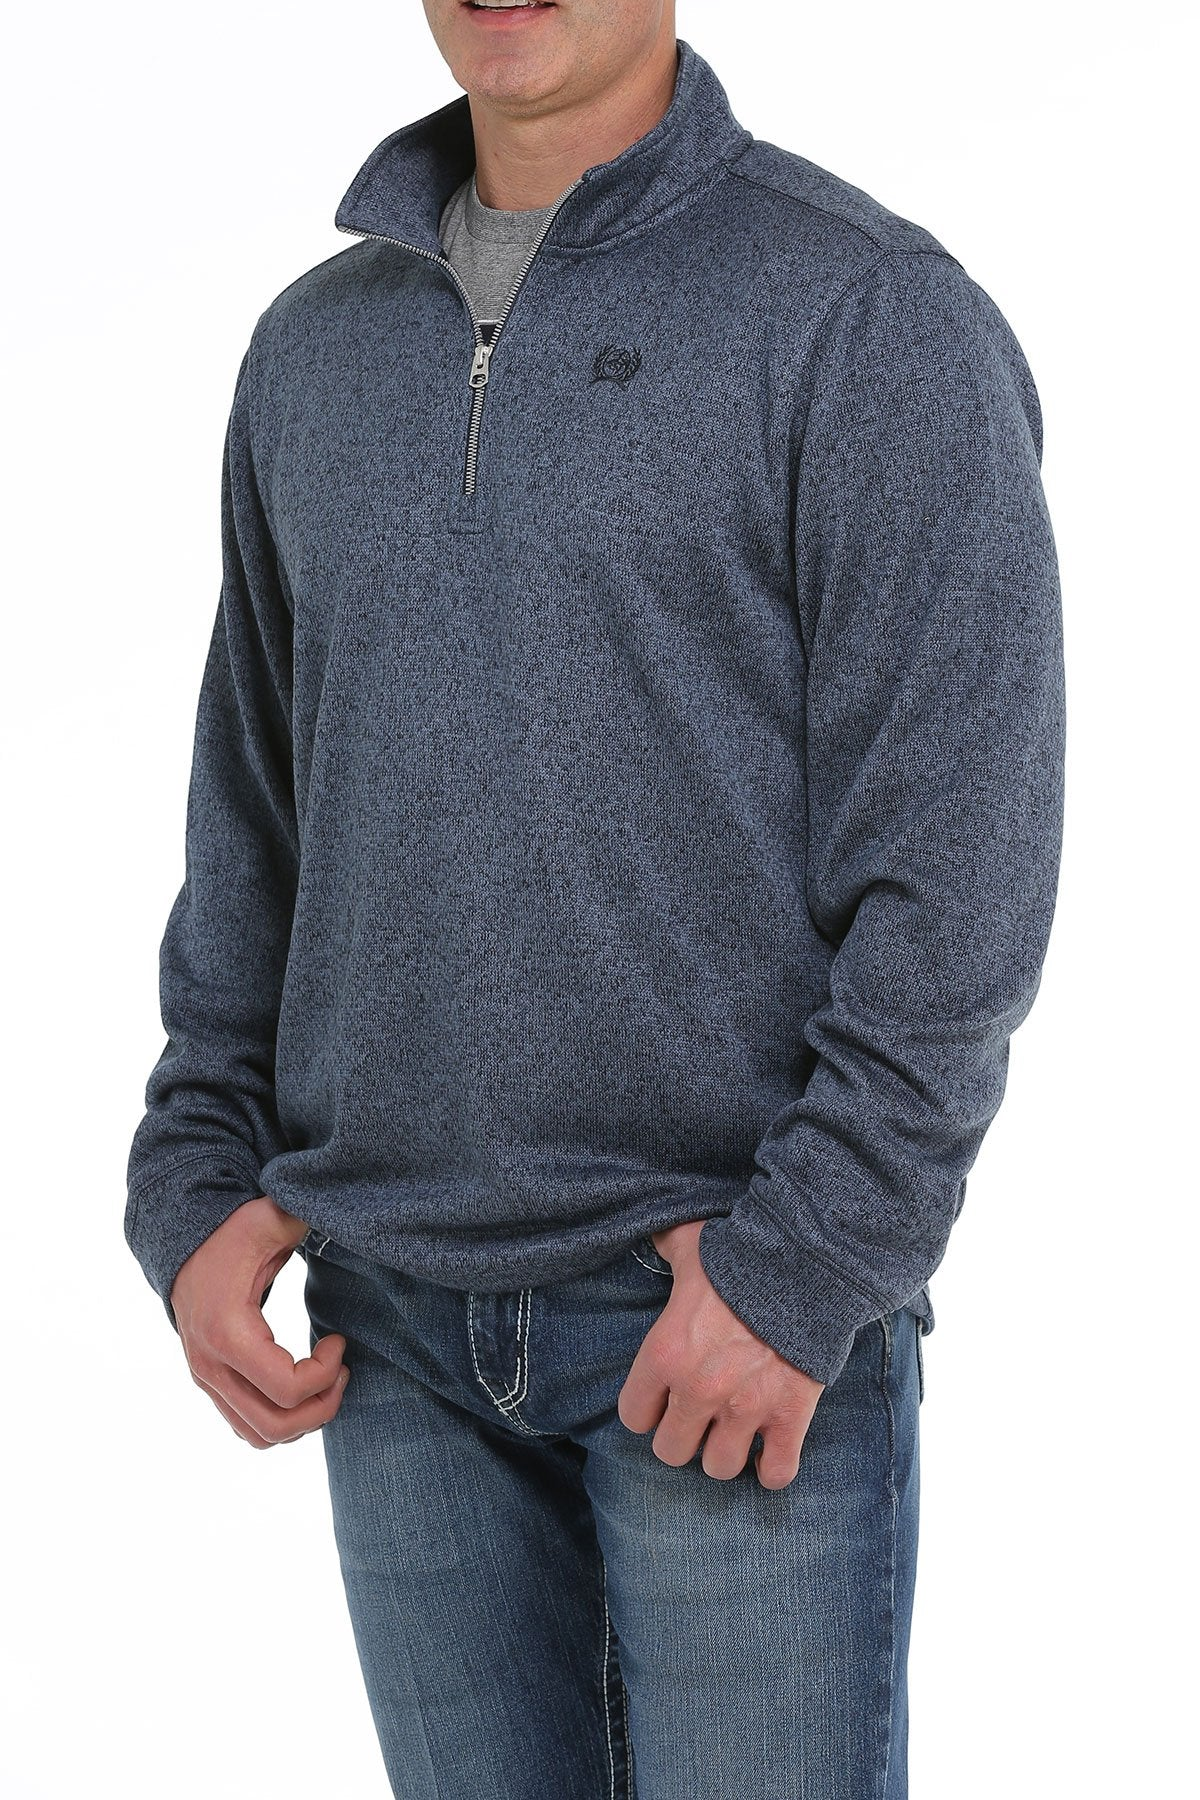 MENS HEATHER NAVY 1/4 ZIP KNIT PULLOVER